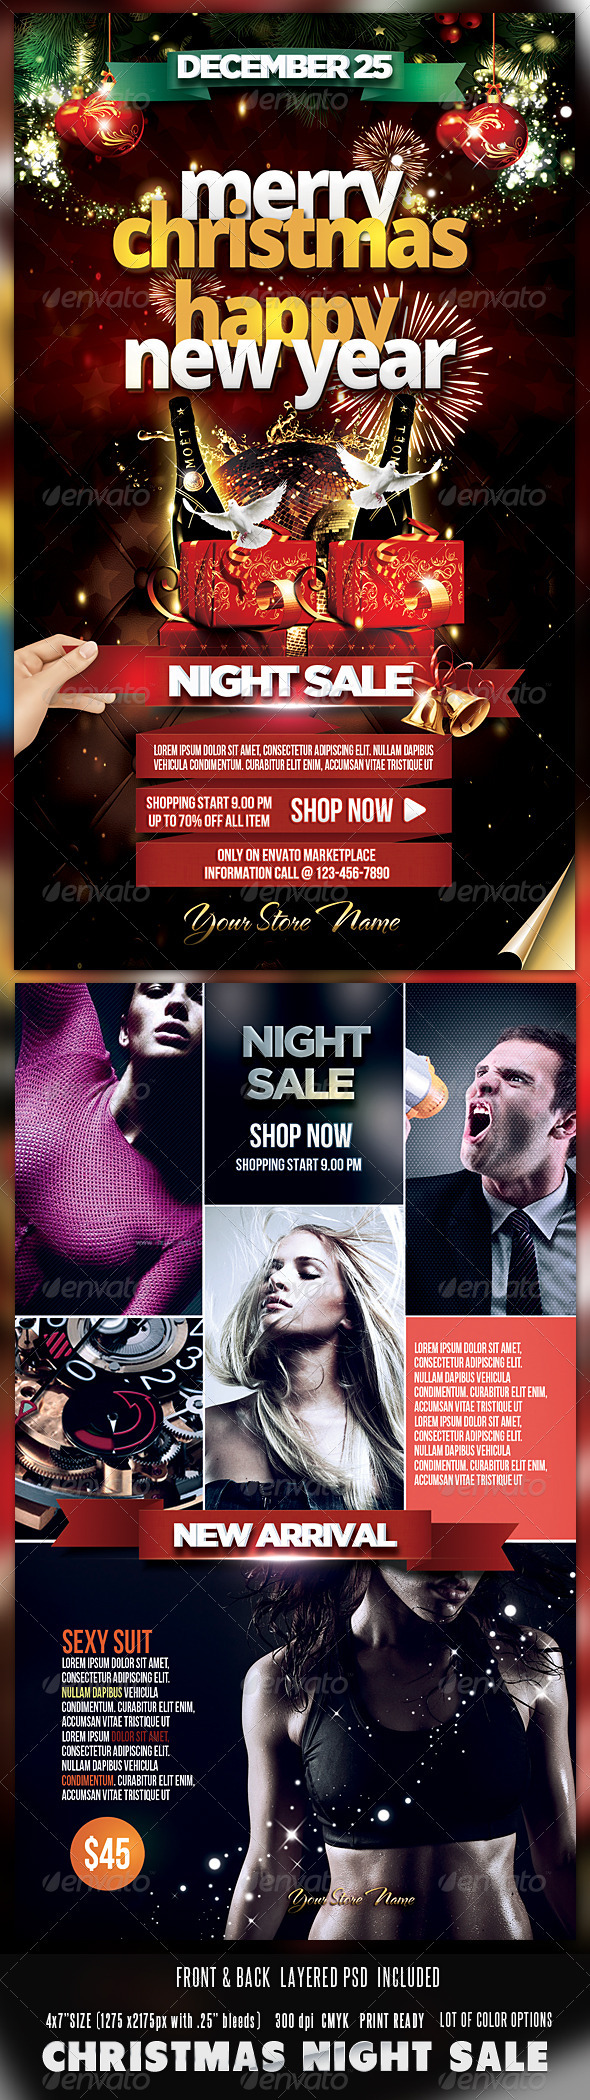 GraphicRiver Christmas Sale Night Flyer-Front & Back 3581923